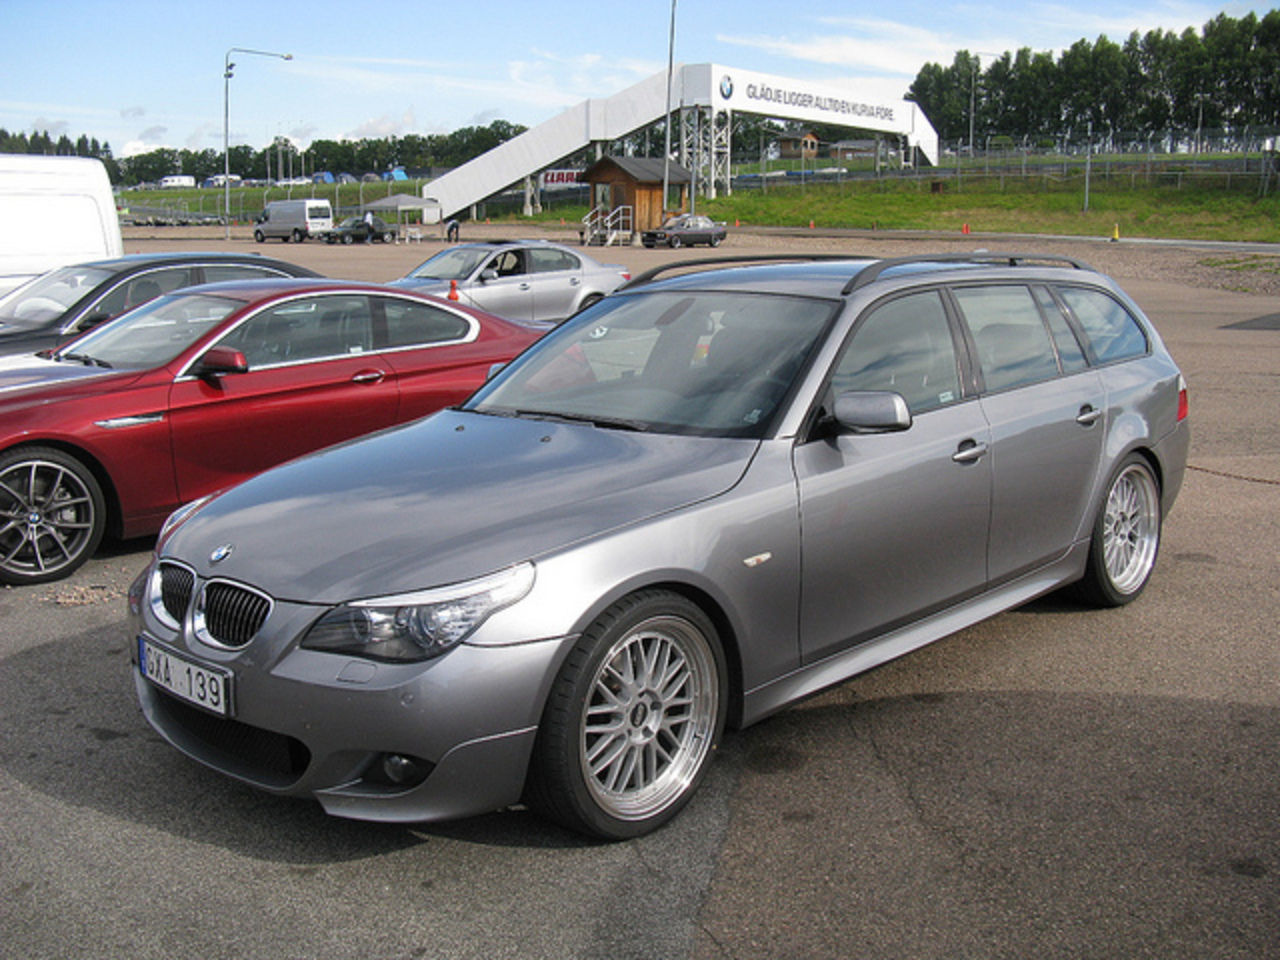 BMW 535d Touring M Sport E61 | Flickr - Photo Sharing!